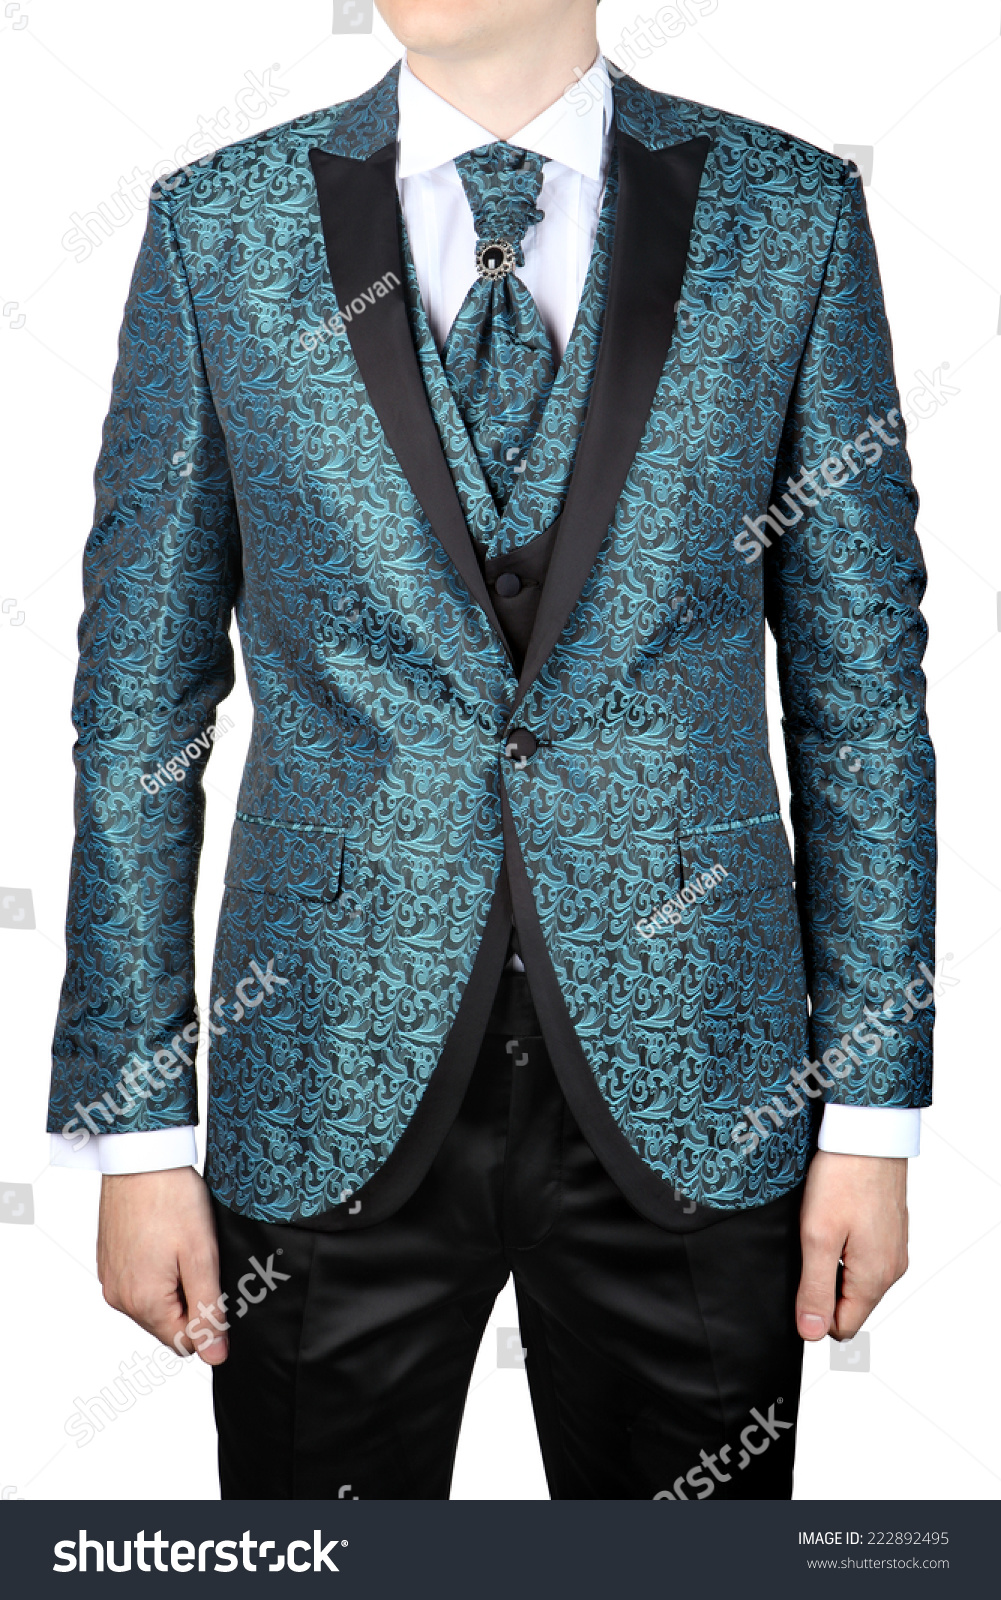 Wedding Turquoise Floral Ornaments Mens Suit Stock Photo (Safe to ...